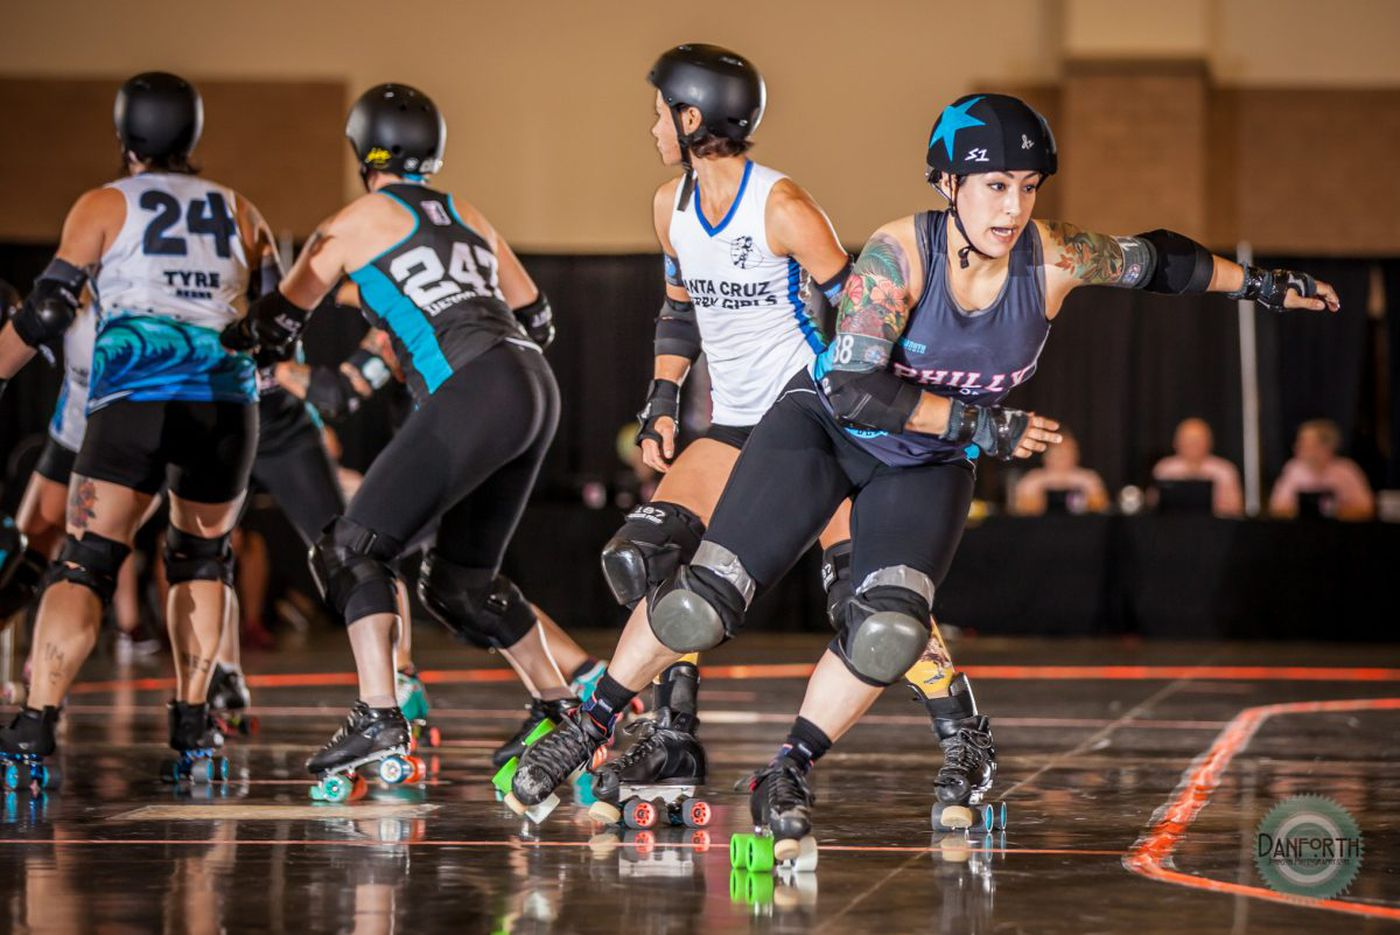 Roller Derby championship, Phantom of the Opera and more things to do November 3-9